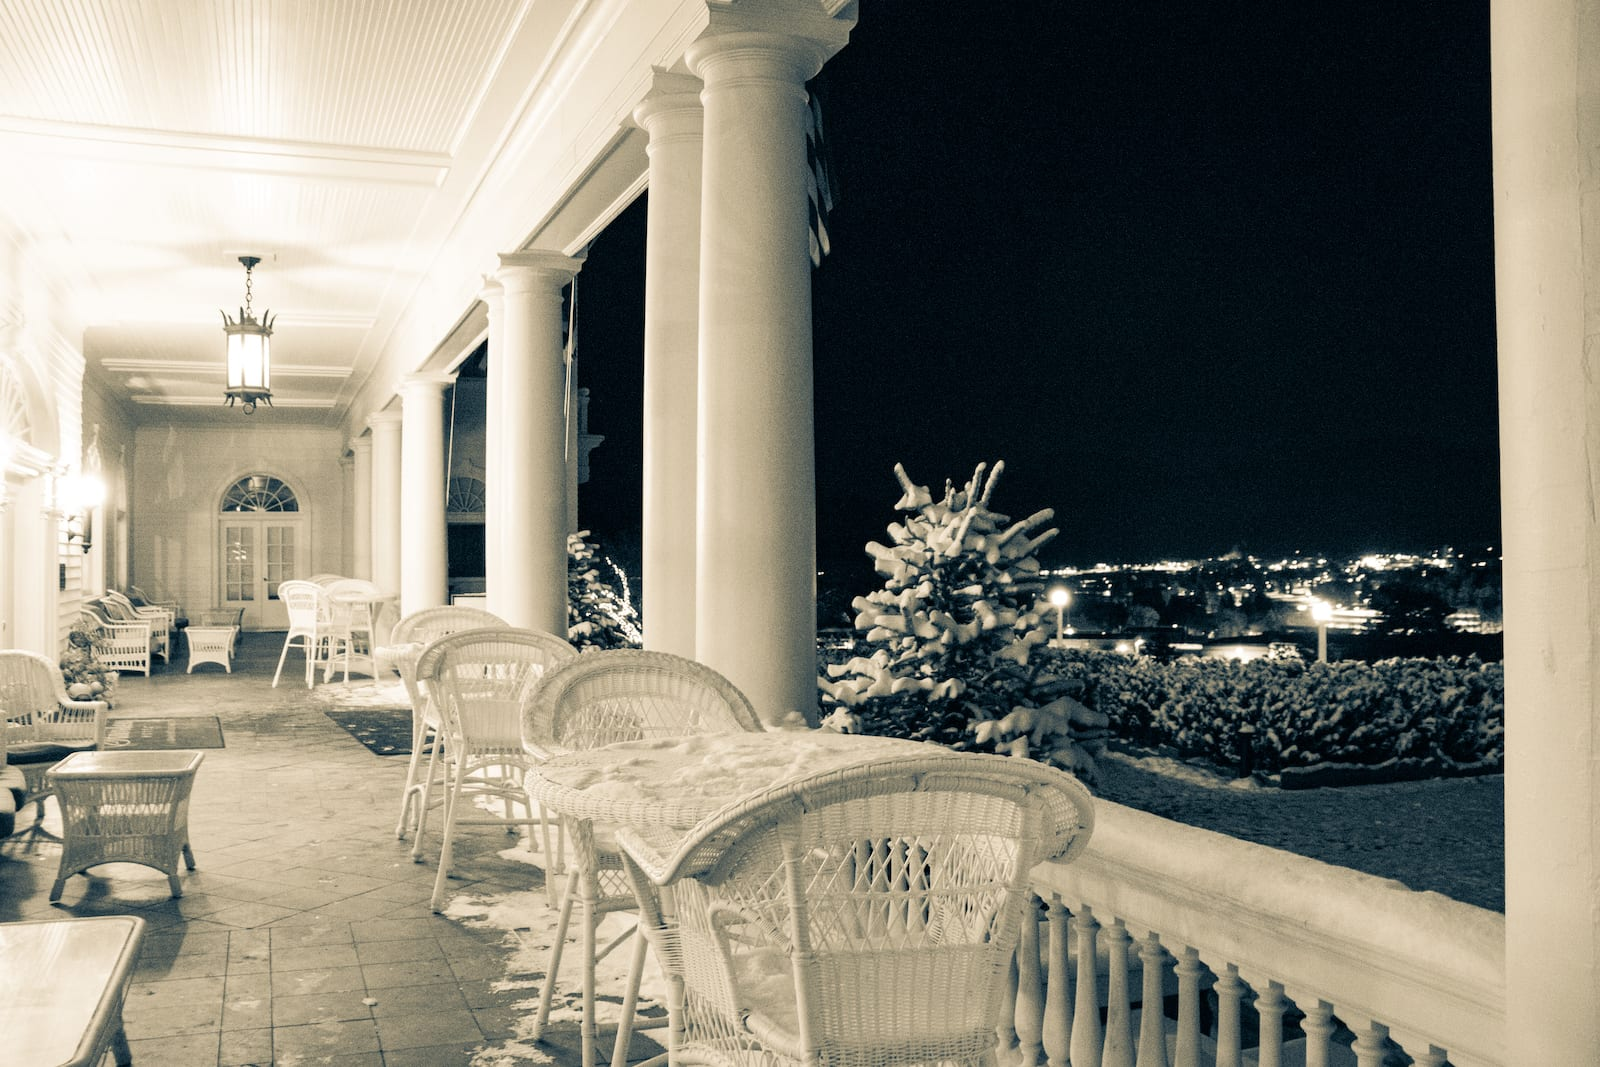 The Stanley Hotel Estes Park CO Patio at Night